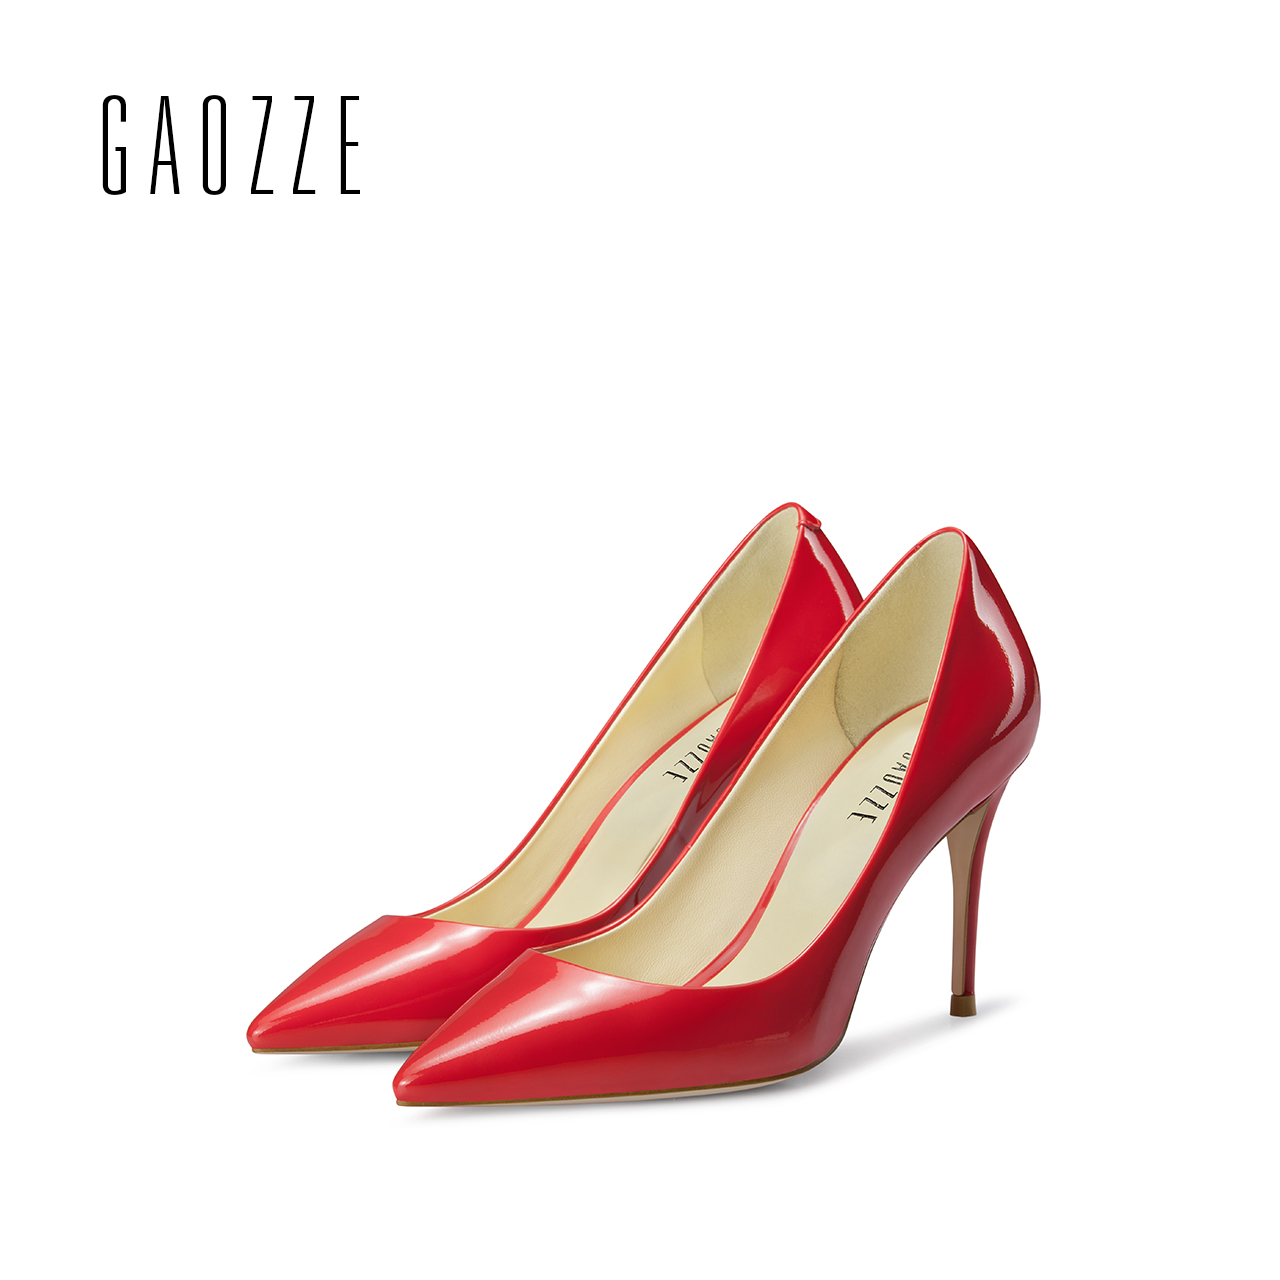 GAOZZE autumn women shoes high heel pumps leather red wedding shoes pointed toe high heels pump shoes sexy female shoes 2017 girl sweater dress superfine wool knitted dress 2015 o neck pocket long sweater tassels christmas children clothing kids dresses